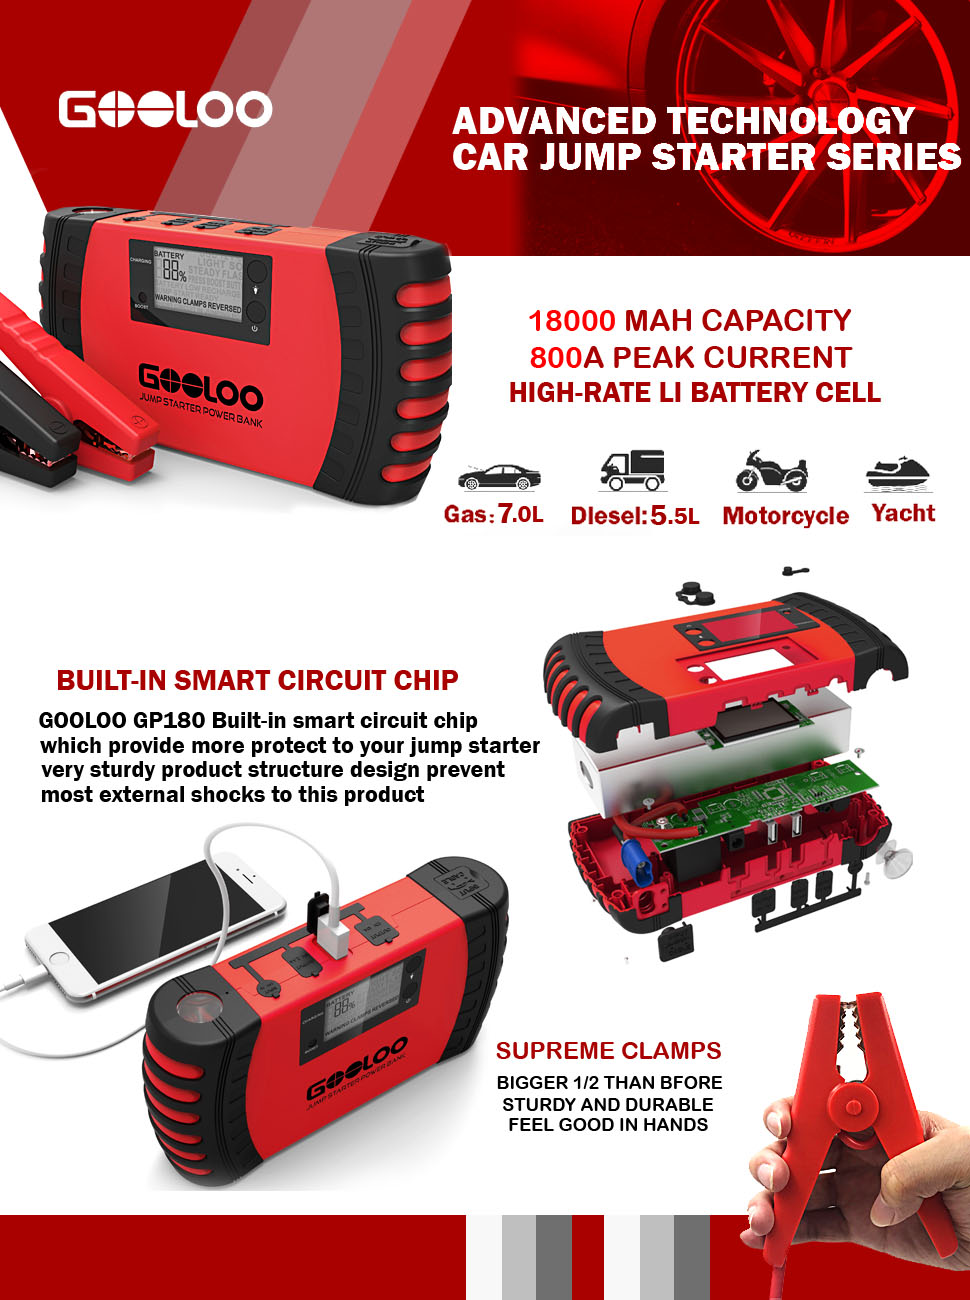 Amazon.com: GOOLOO 800A Peak 18000mAh Car Jump Starter (Up